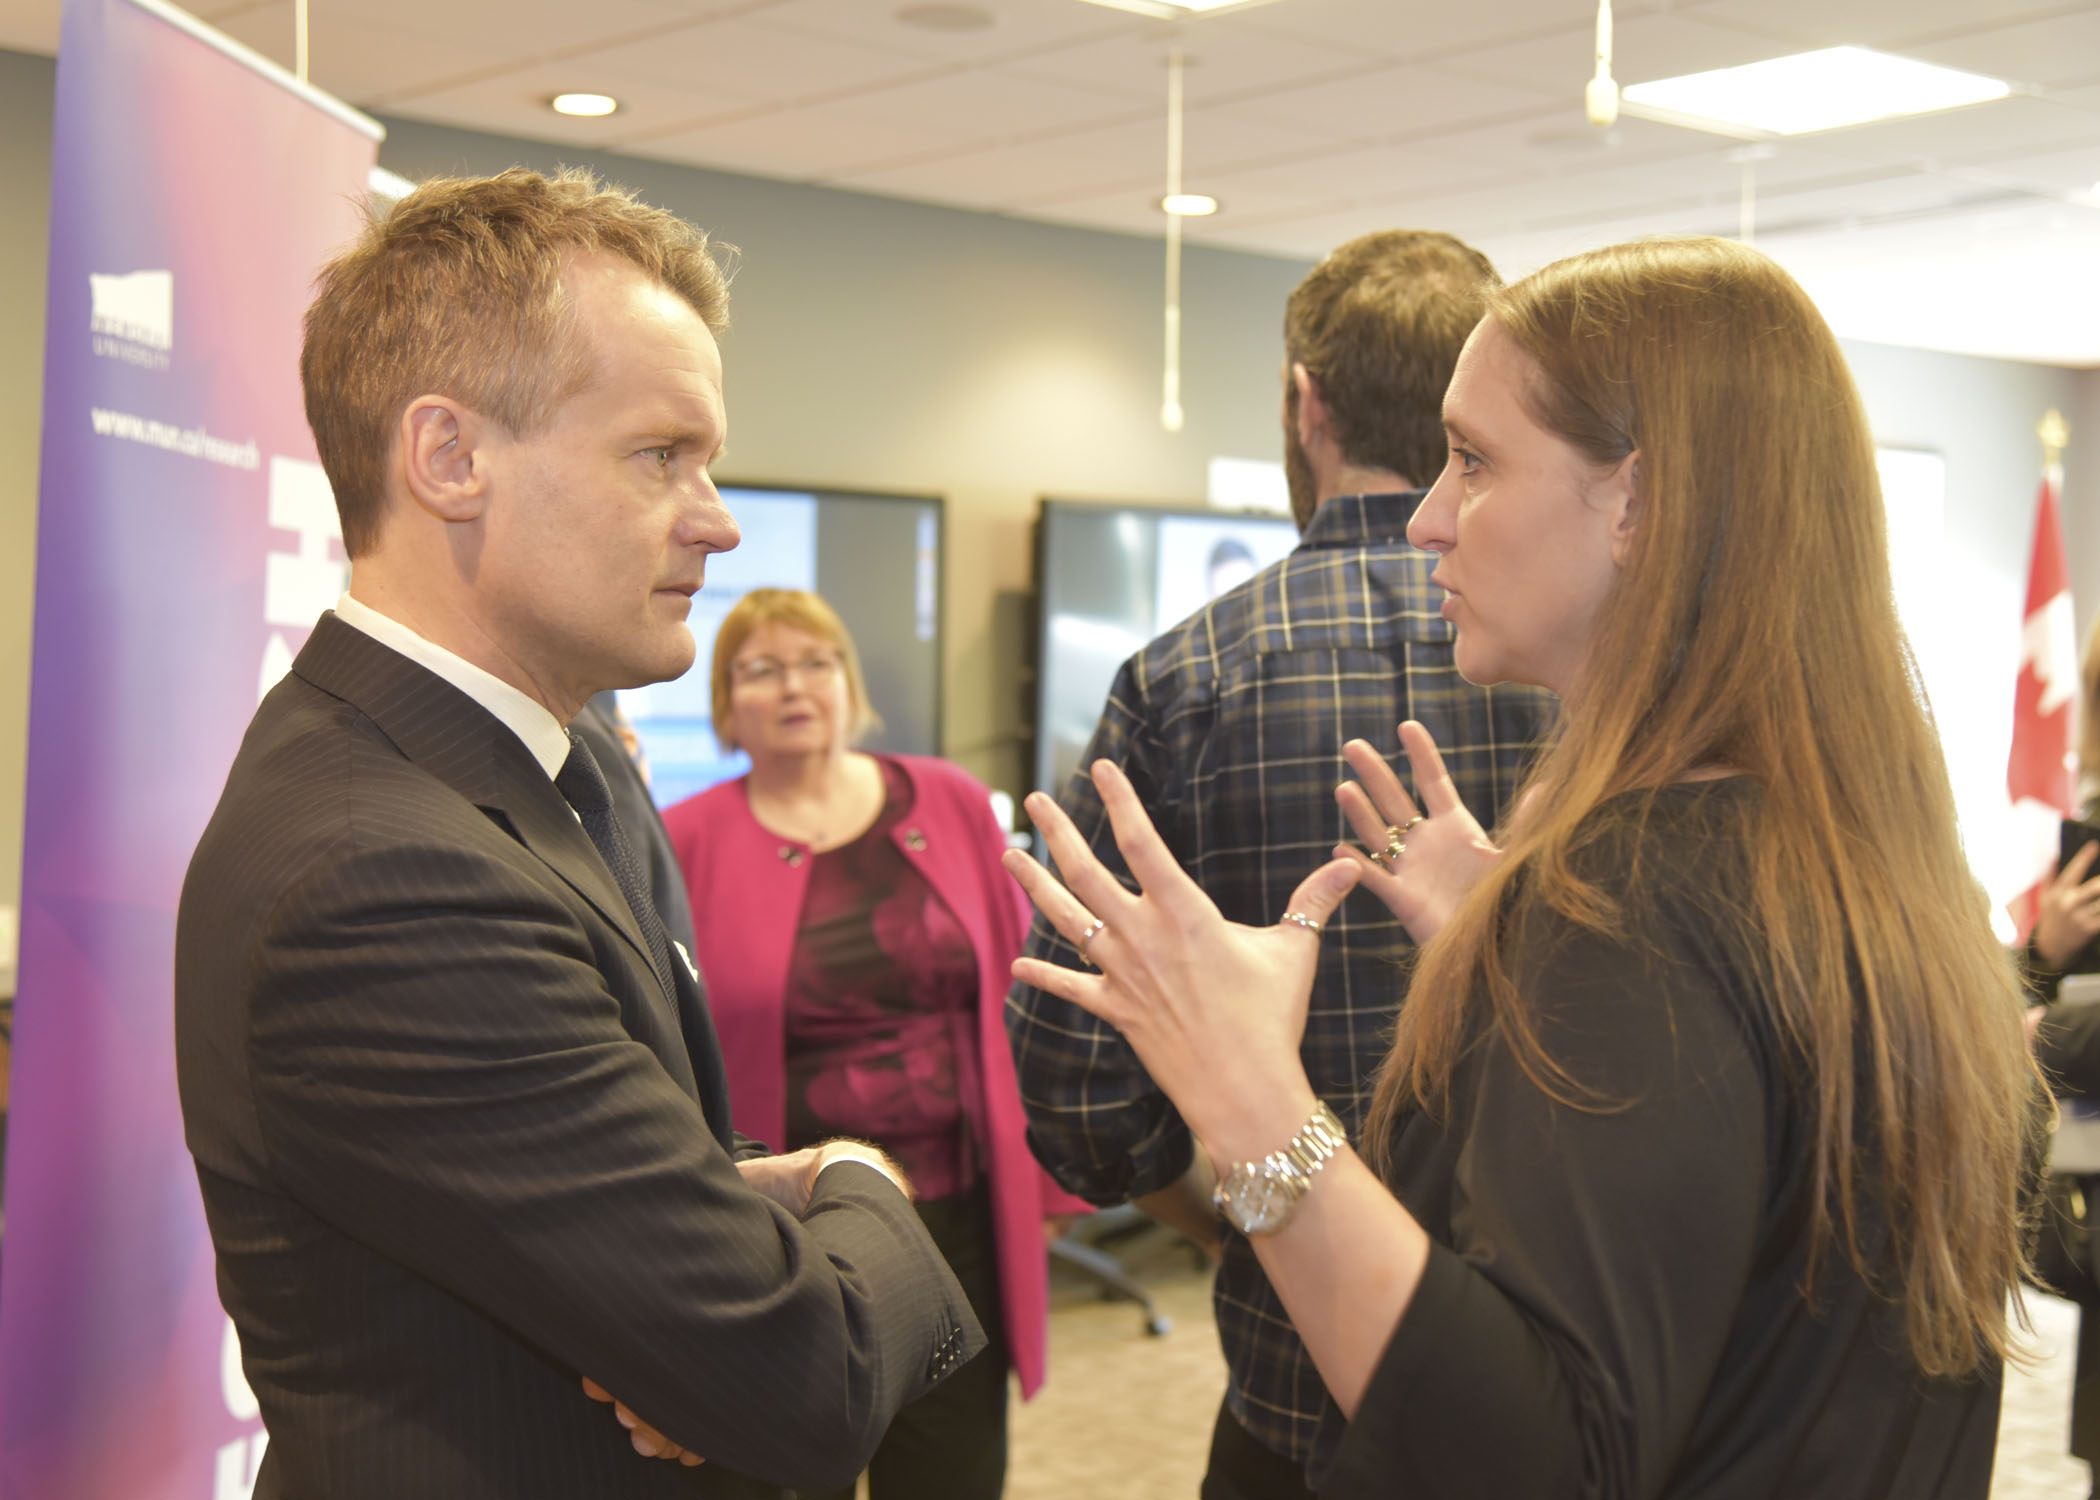 Minister Seamus O'Regan met with Dr. Sheila Garland during the event on March 12.